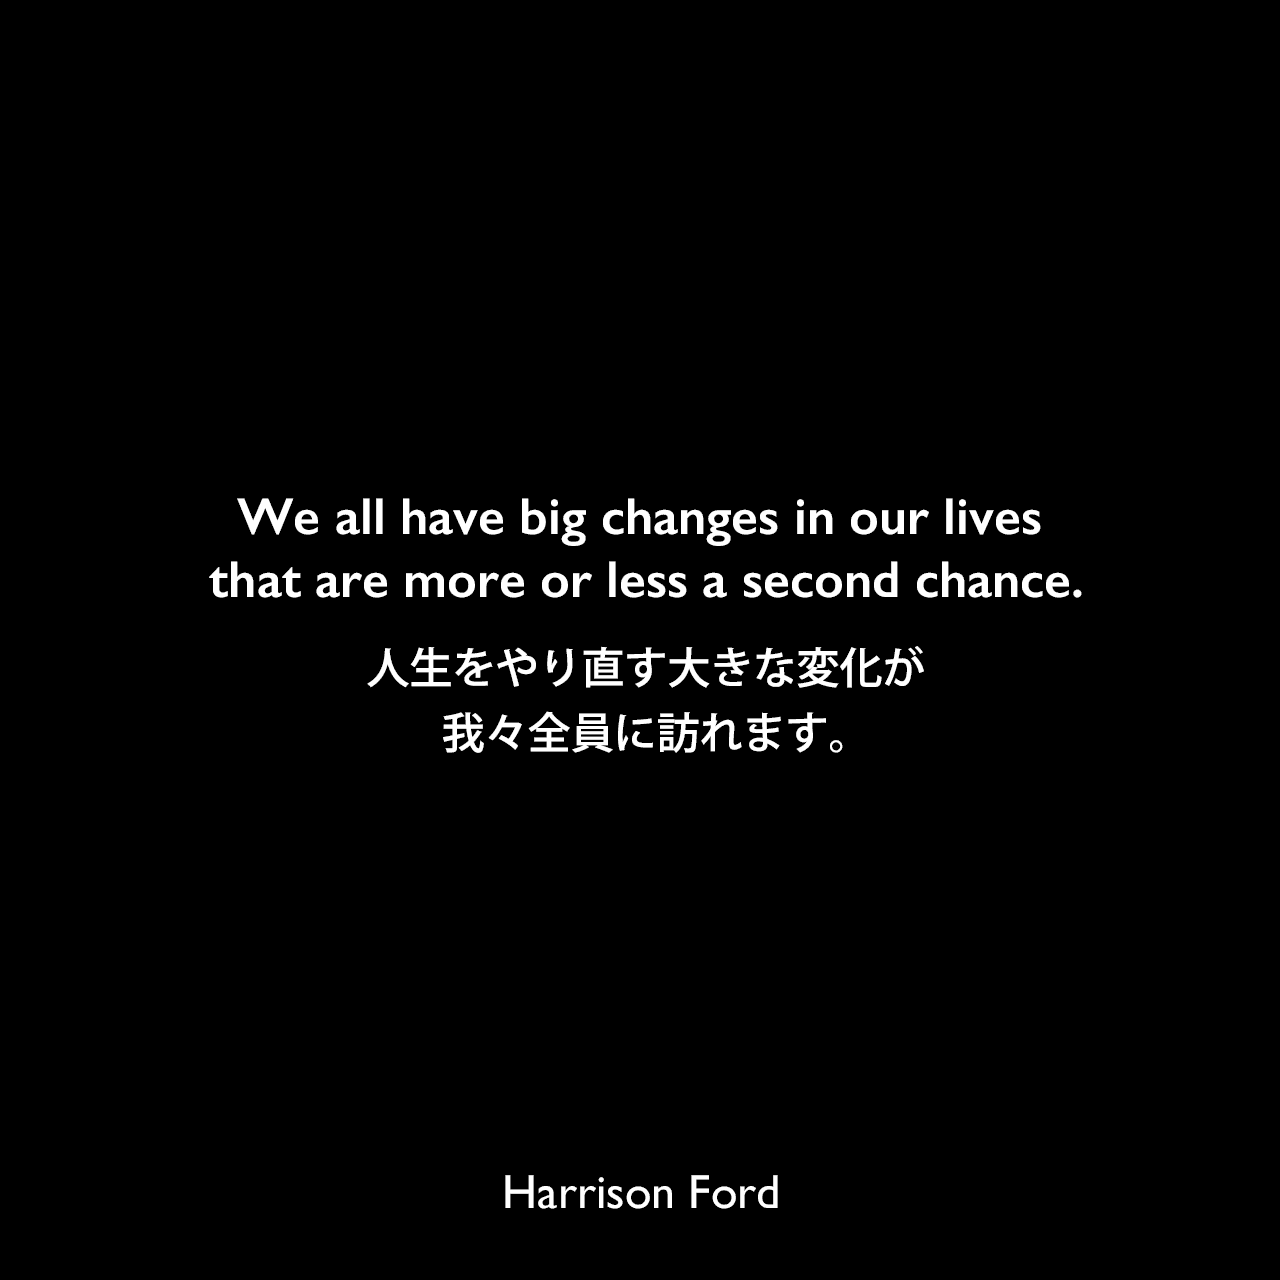 We all have big changes in our lives that are more or less a second chance.人生をやり直す大きな変化が、我々全員に訪れます。Harrison Ford